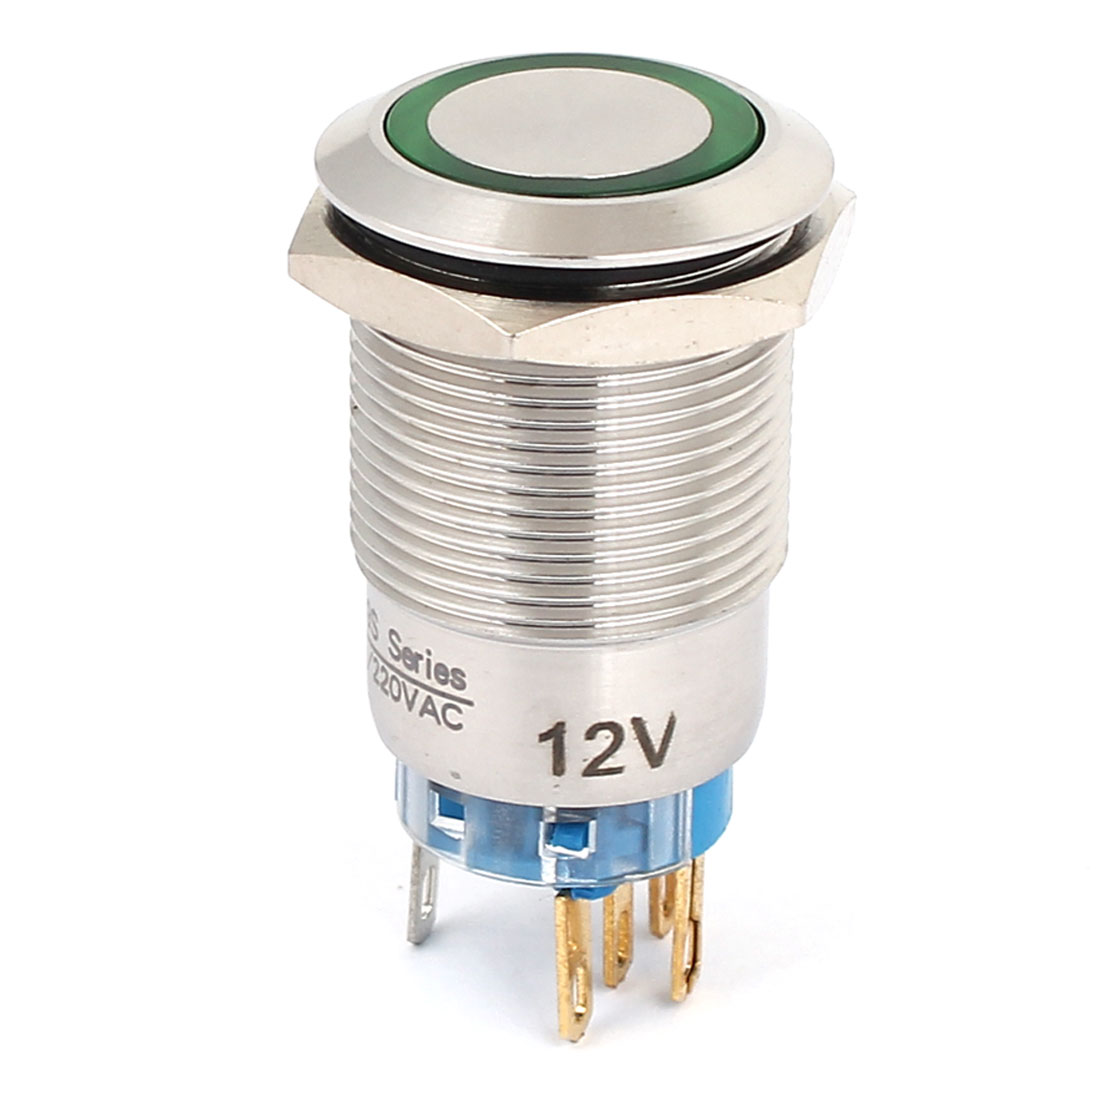 12V 19mm Dia Thread Green LED Angle Eyes Momentary Metal Pushbutton Switch